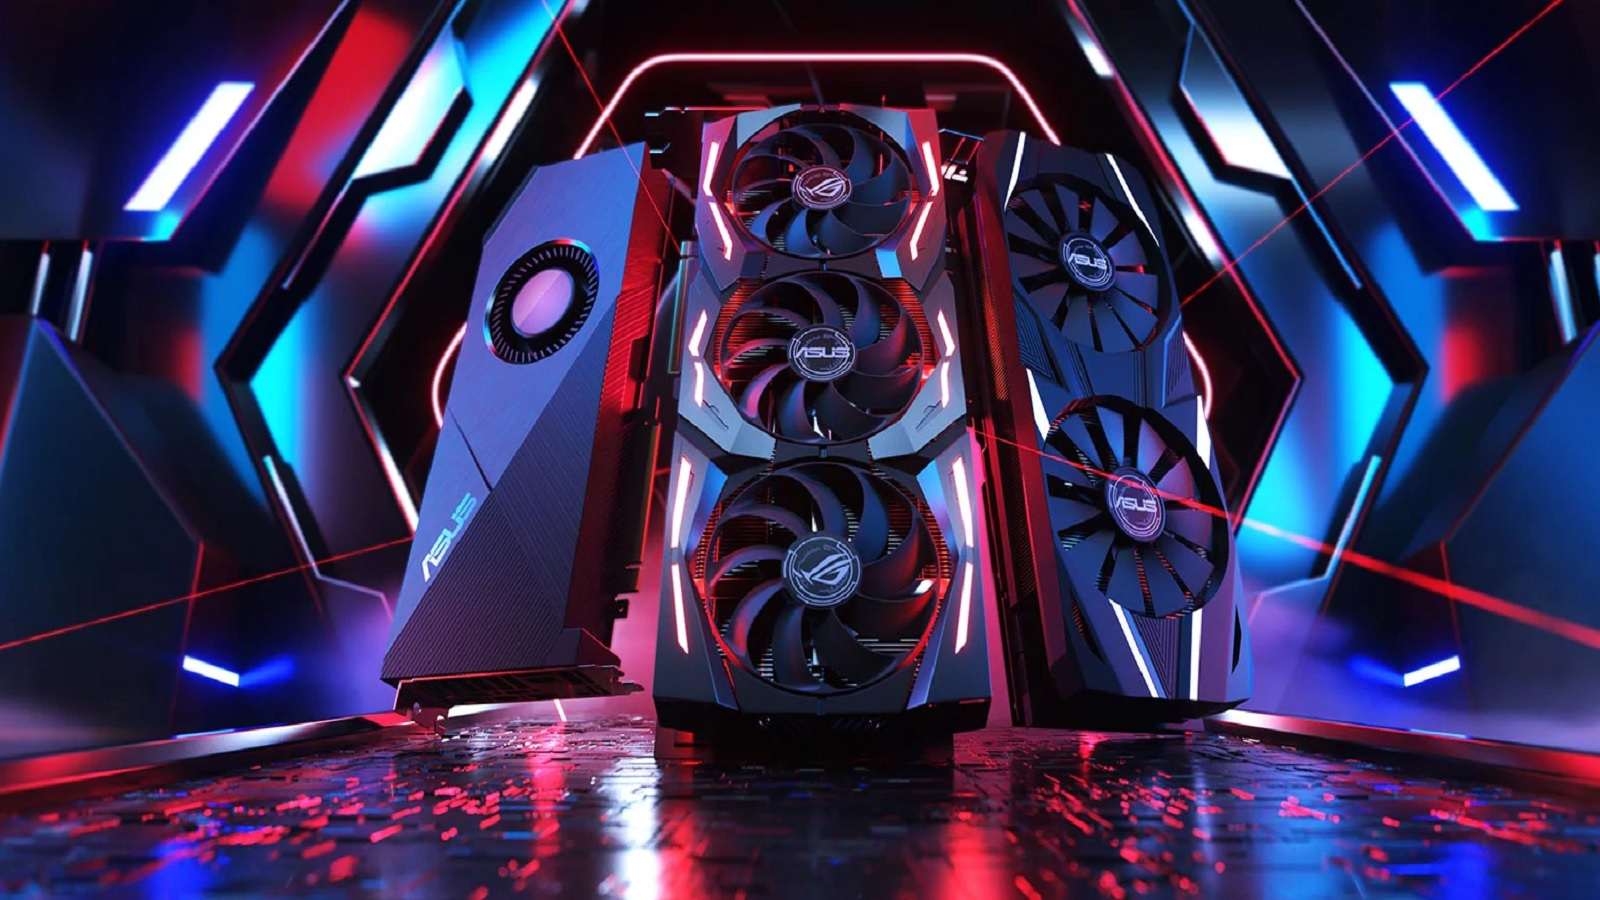 Обзор и тест видеокарты ASUS ROG Strix GeForce RTX 2080 Ti OC